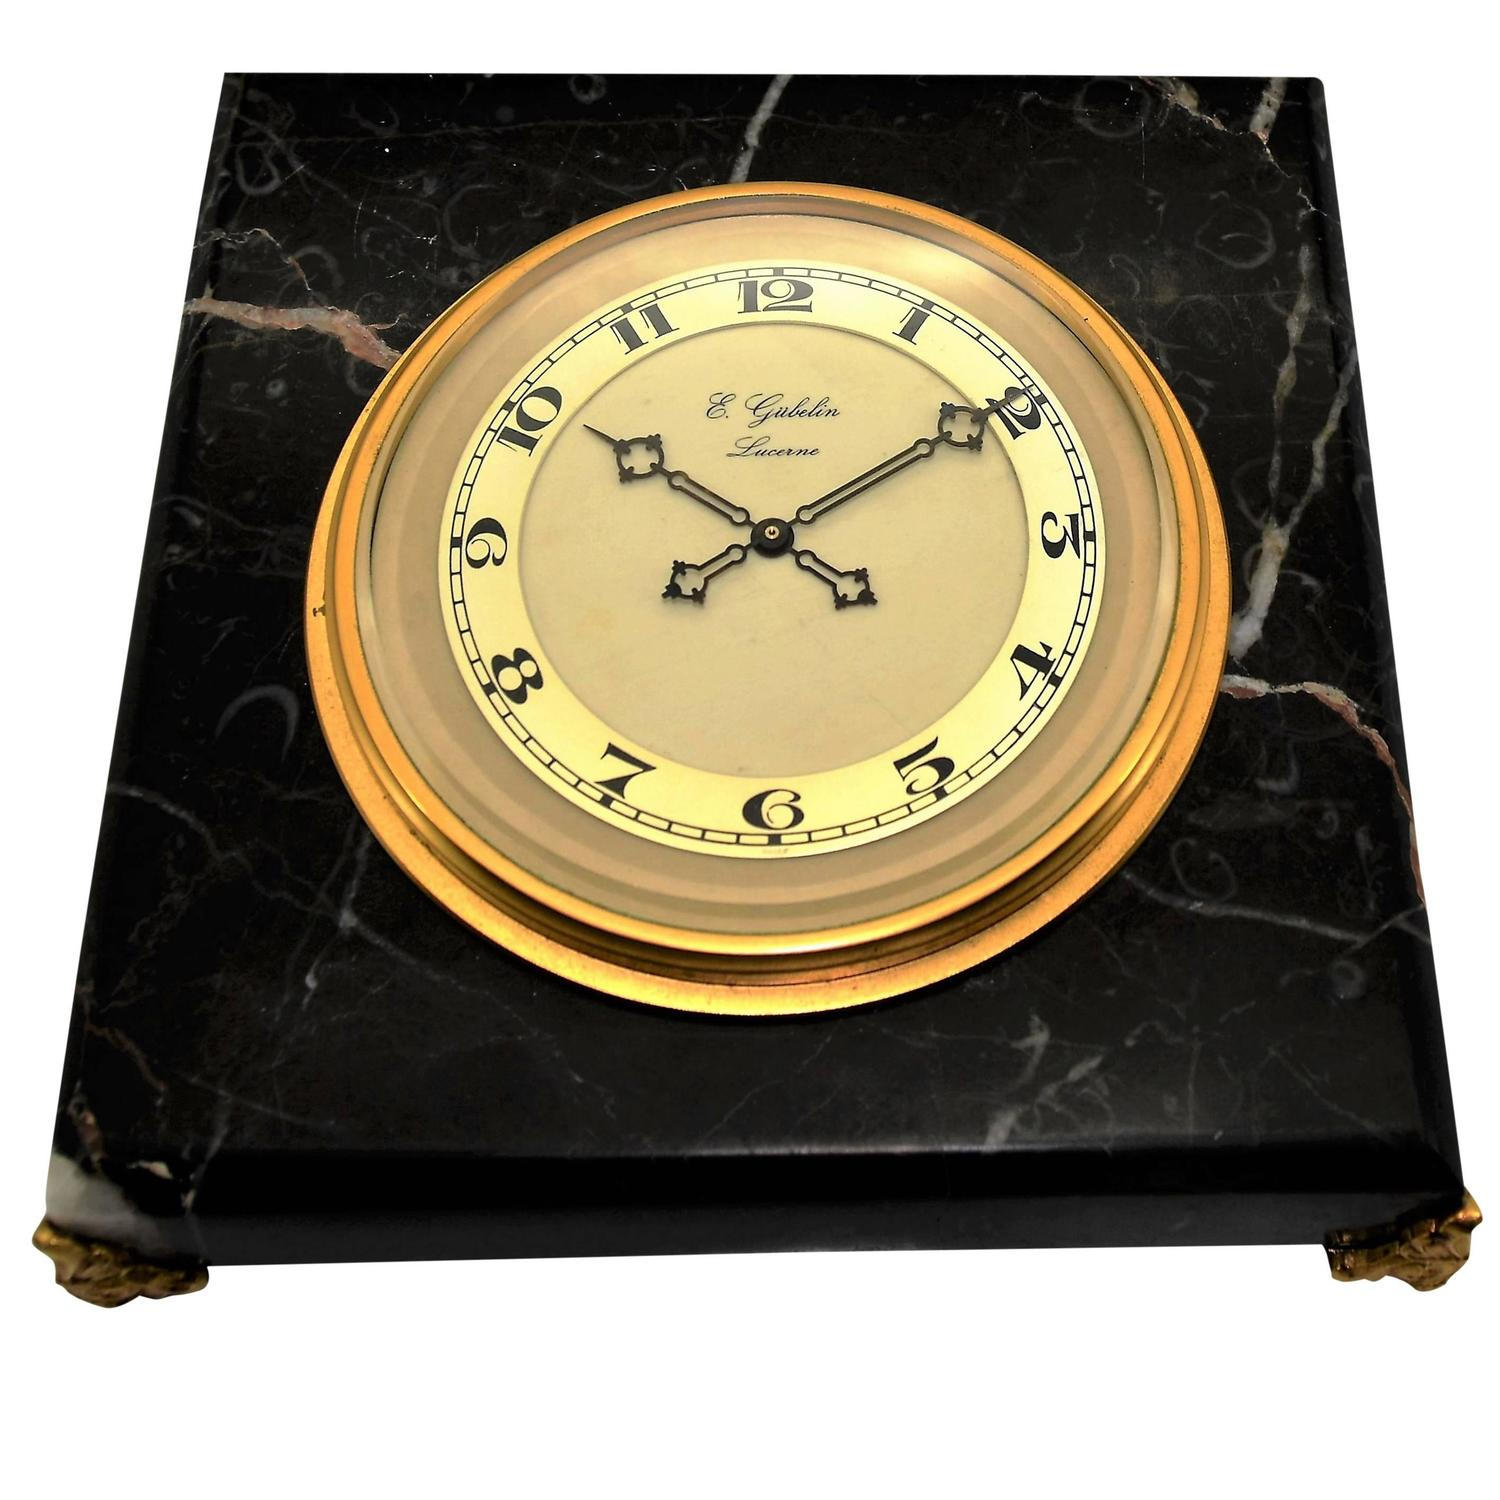 1930s E. Gubelin Watch Company Art Deco Stone Manually Wound Table ...